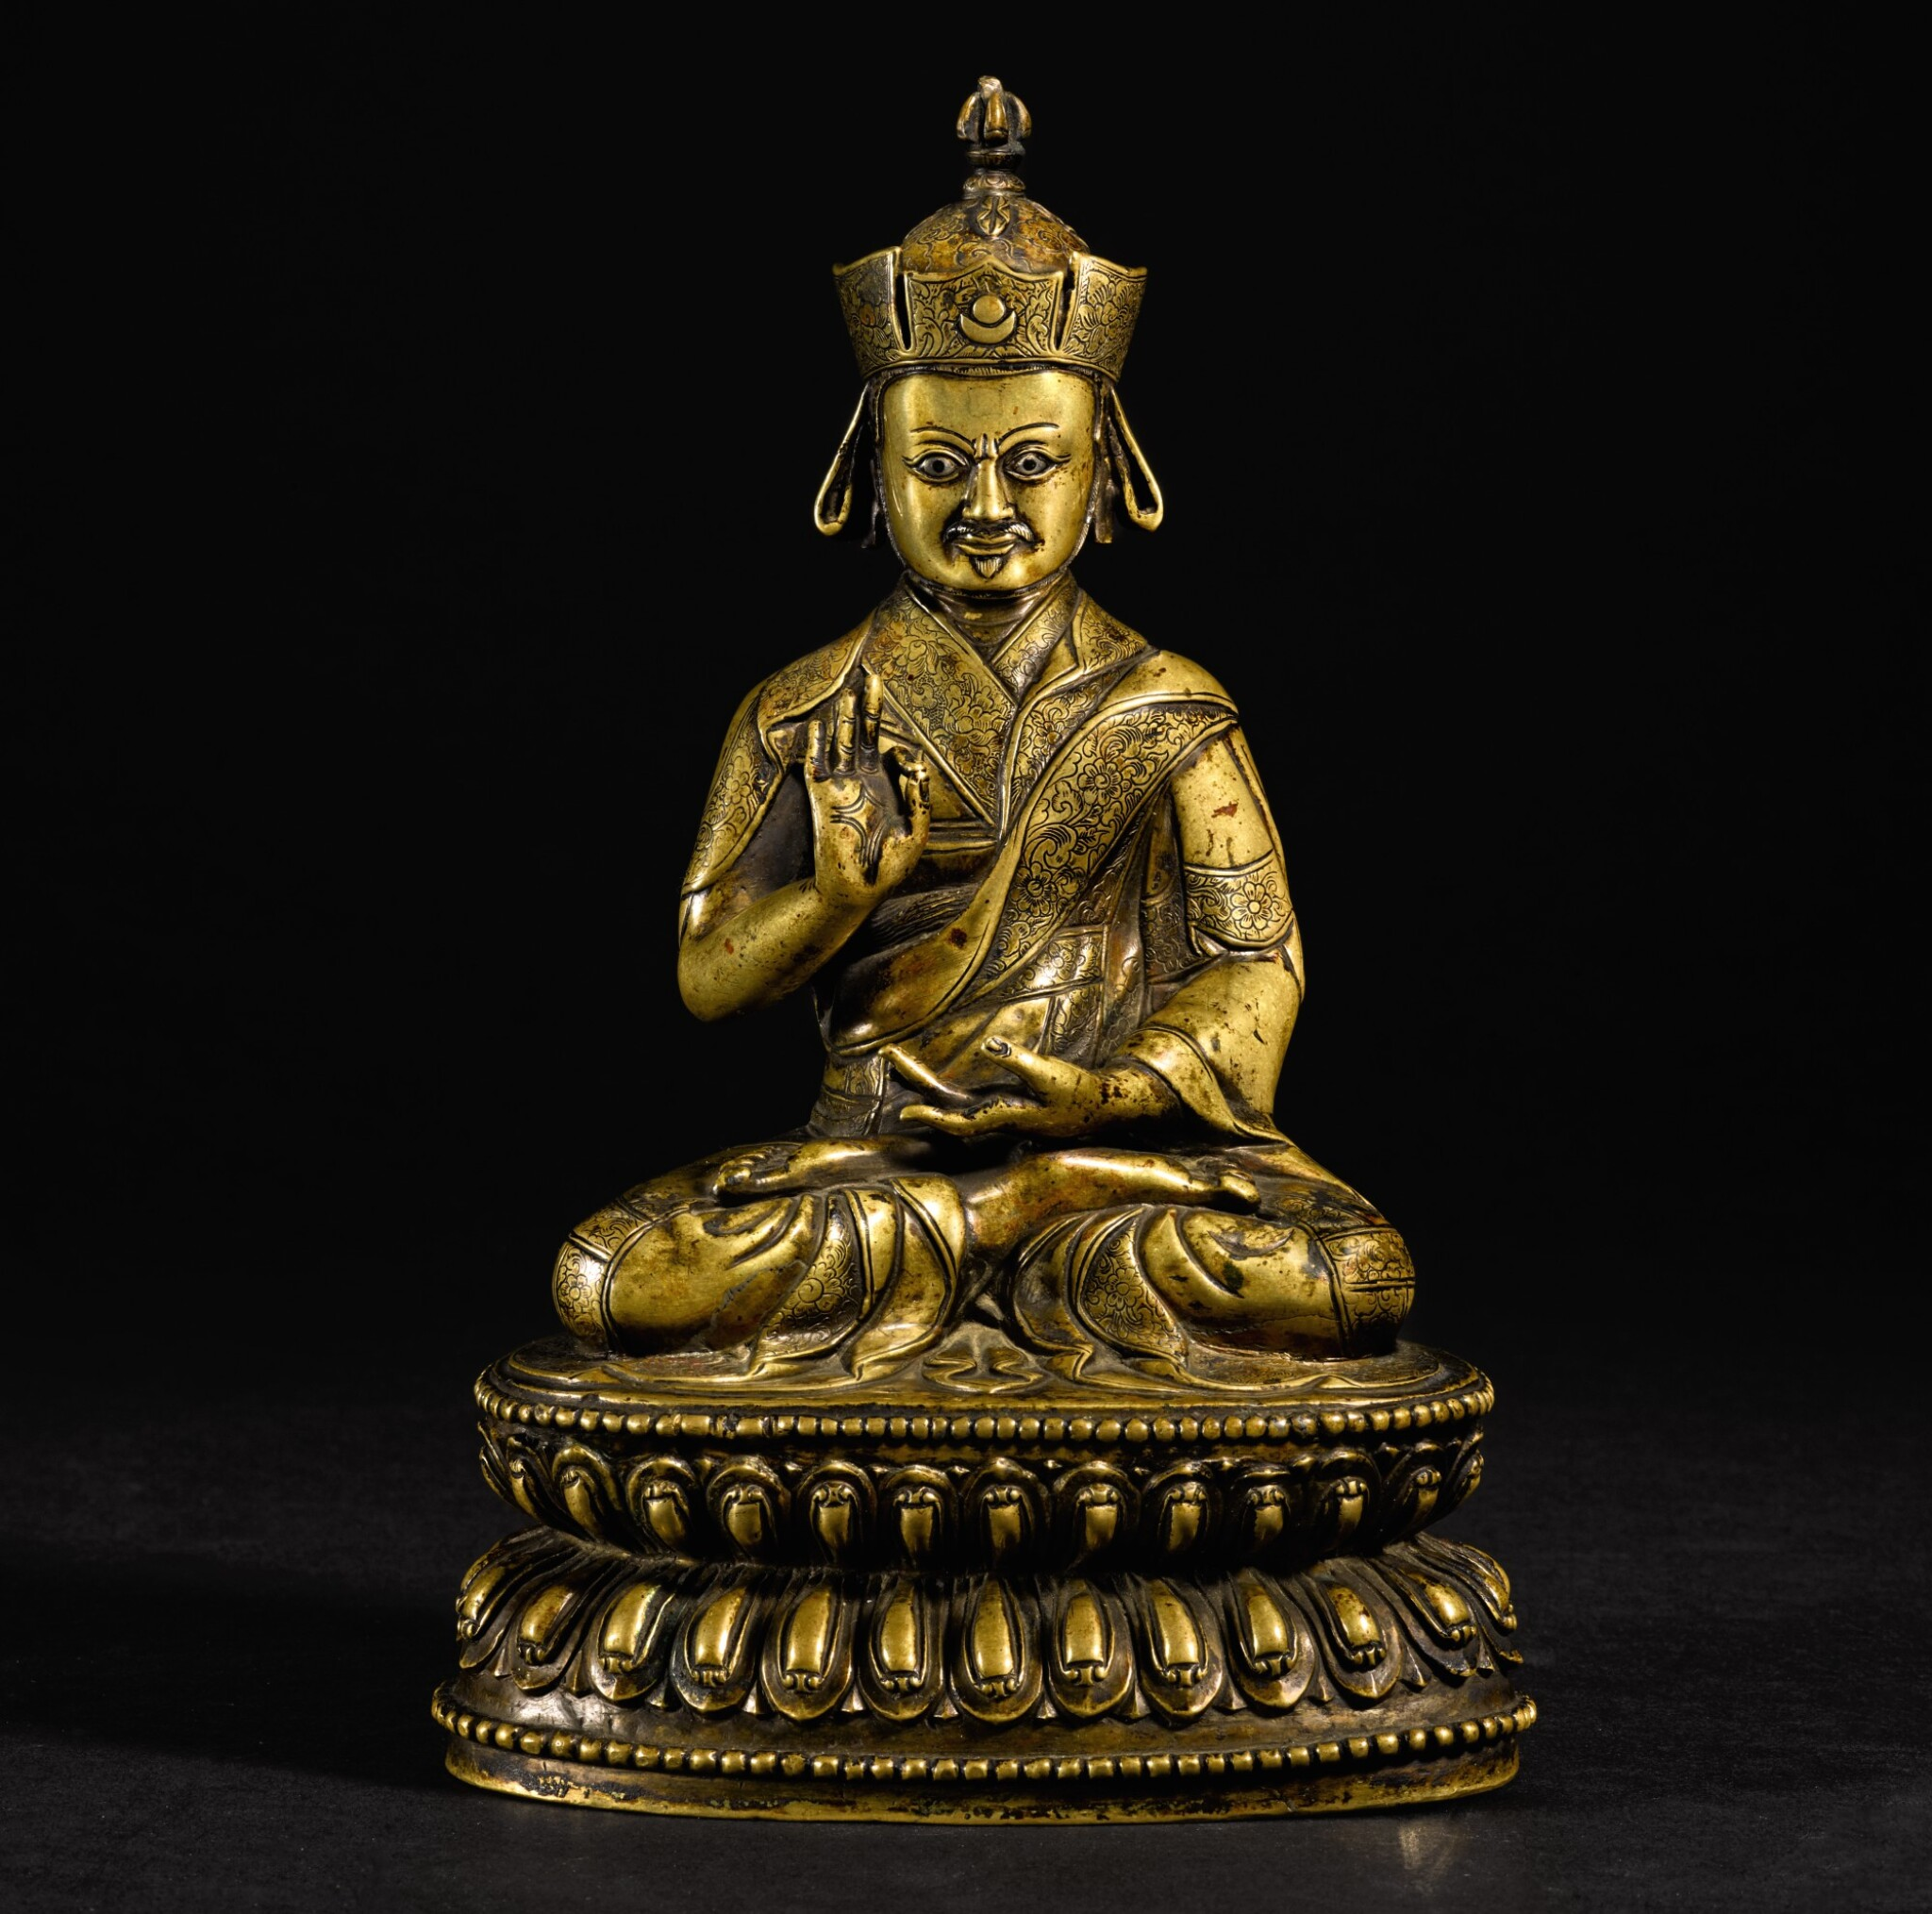 View 1 of Lot 189. A SILVER-INLAID COPPER-ALLOY FIGURE OF NYINGMAPA LAMA TIBET, 16TH/17TH CENTURY   十六/十七世紀 藏傳銅錯銀寧瑪派喇嘛坐像.